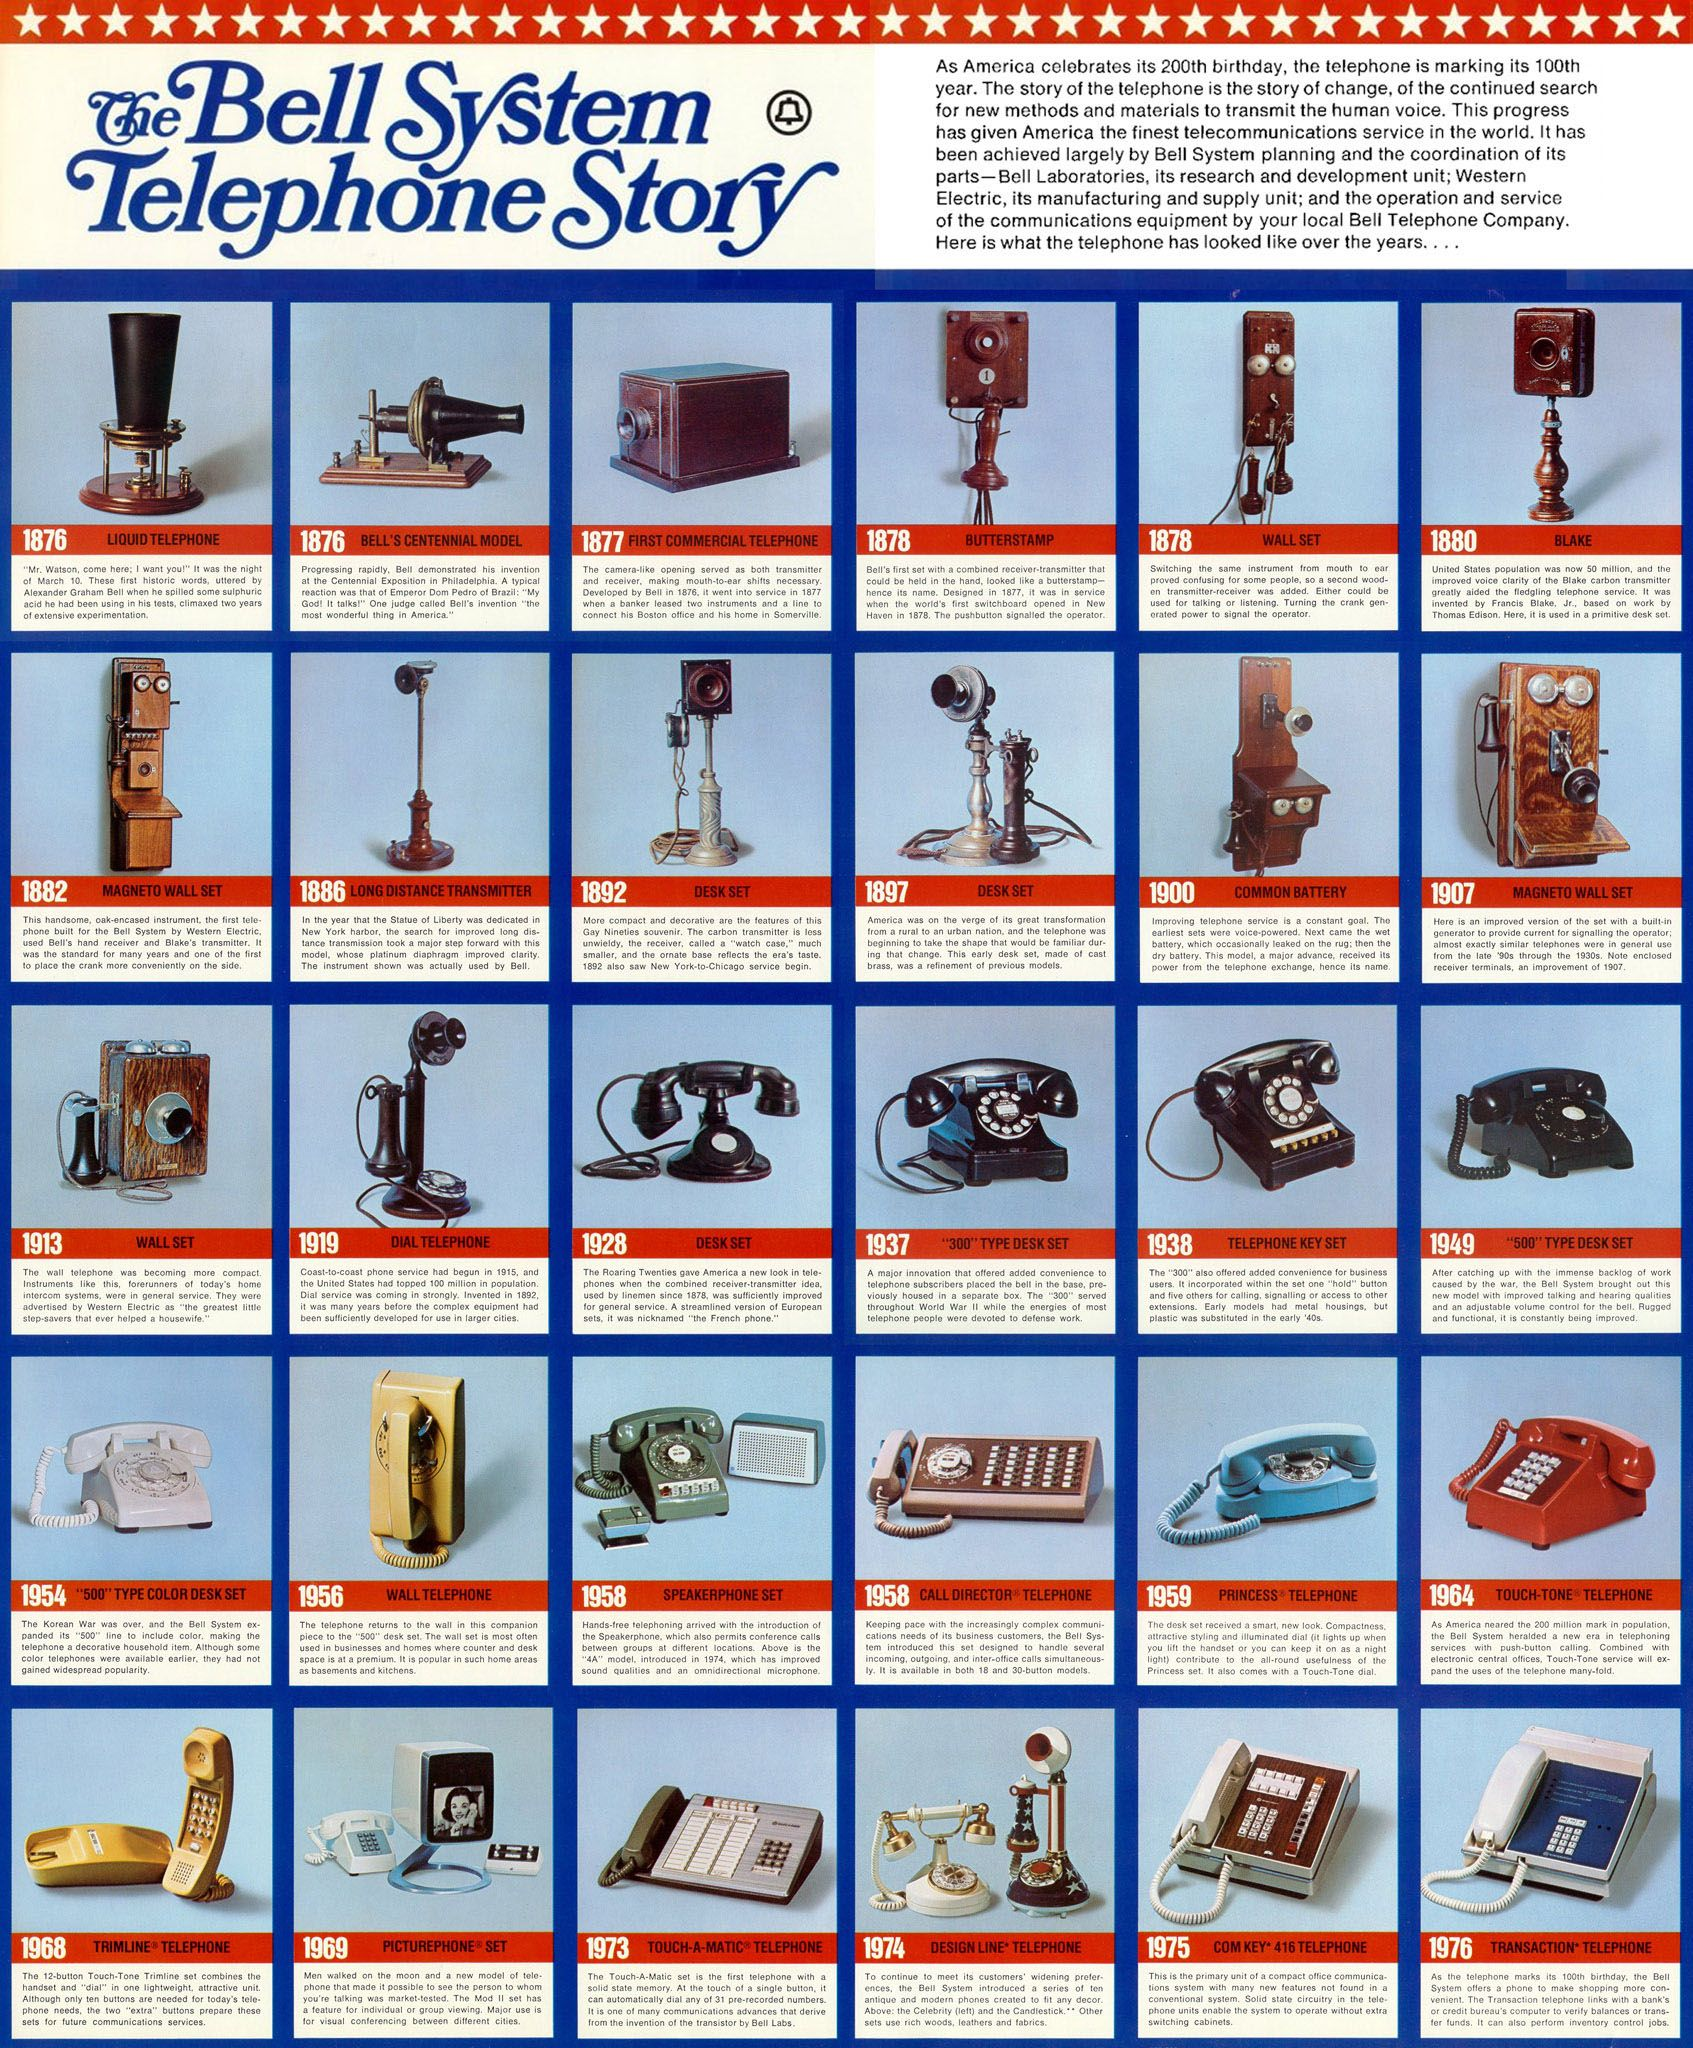 Alexander Graham Bell Got His Patent For The First Telephone On